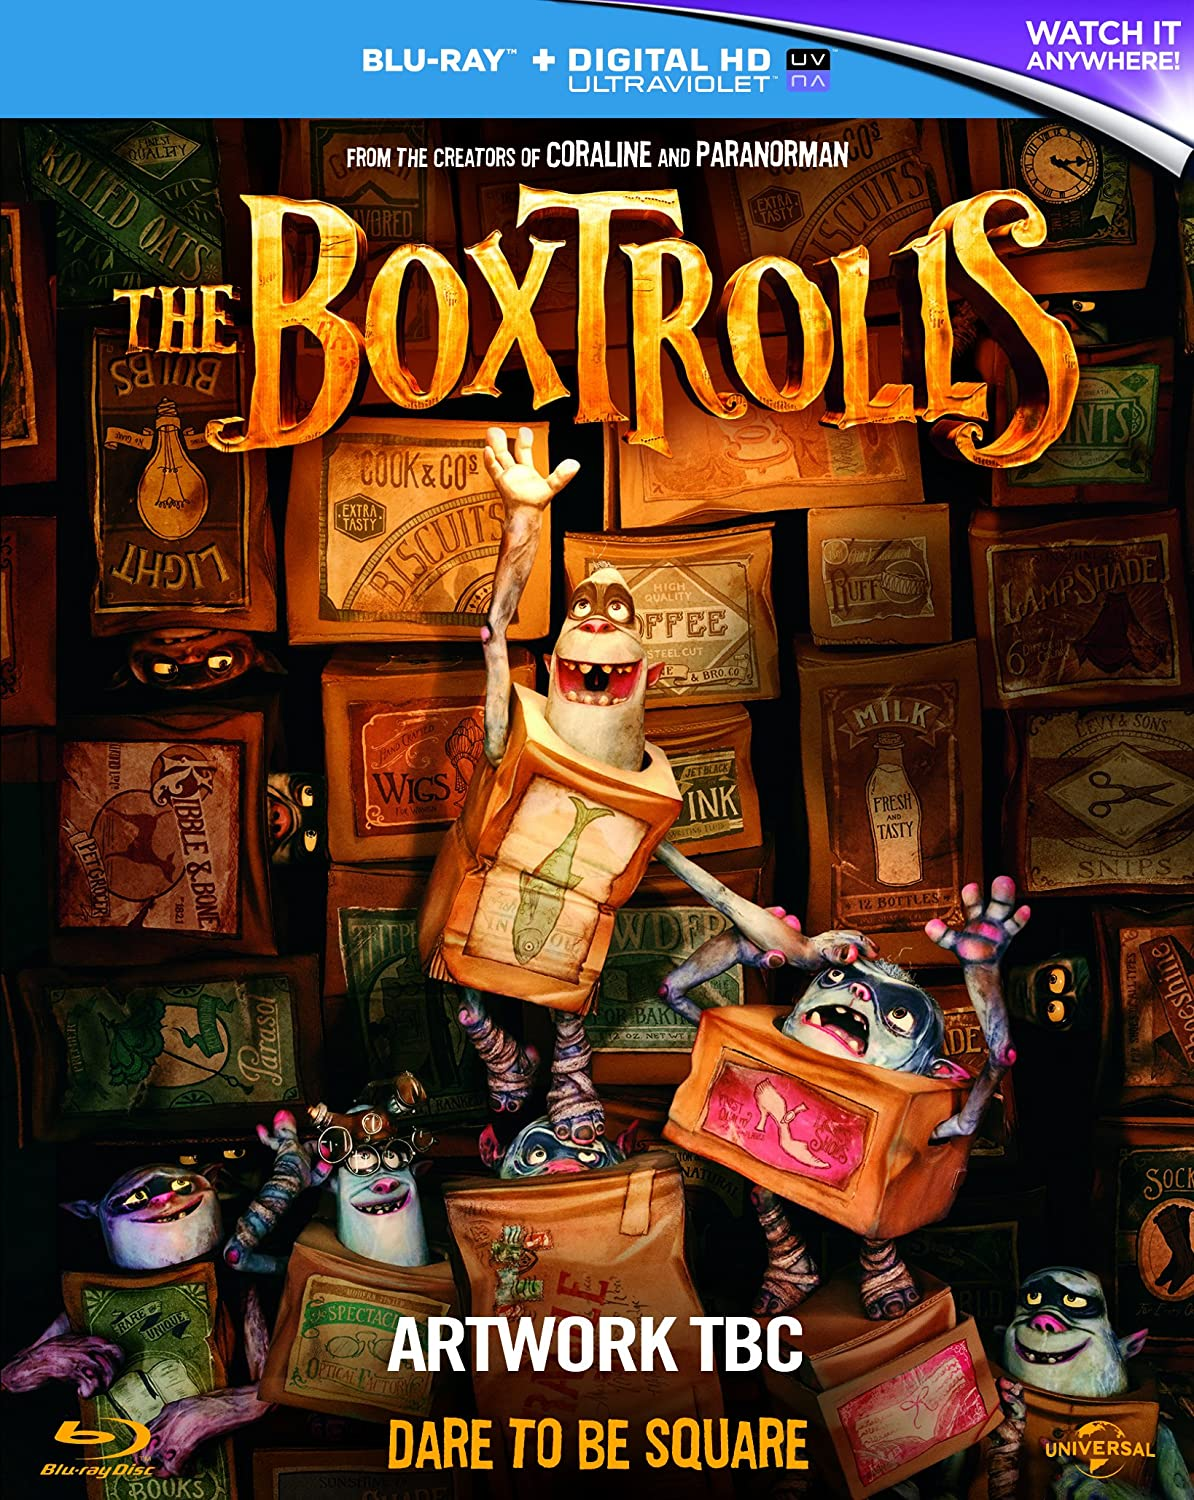 The Boxtrolls (2014) Animation | Adventure (BLURAY) added